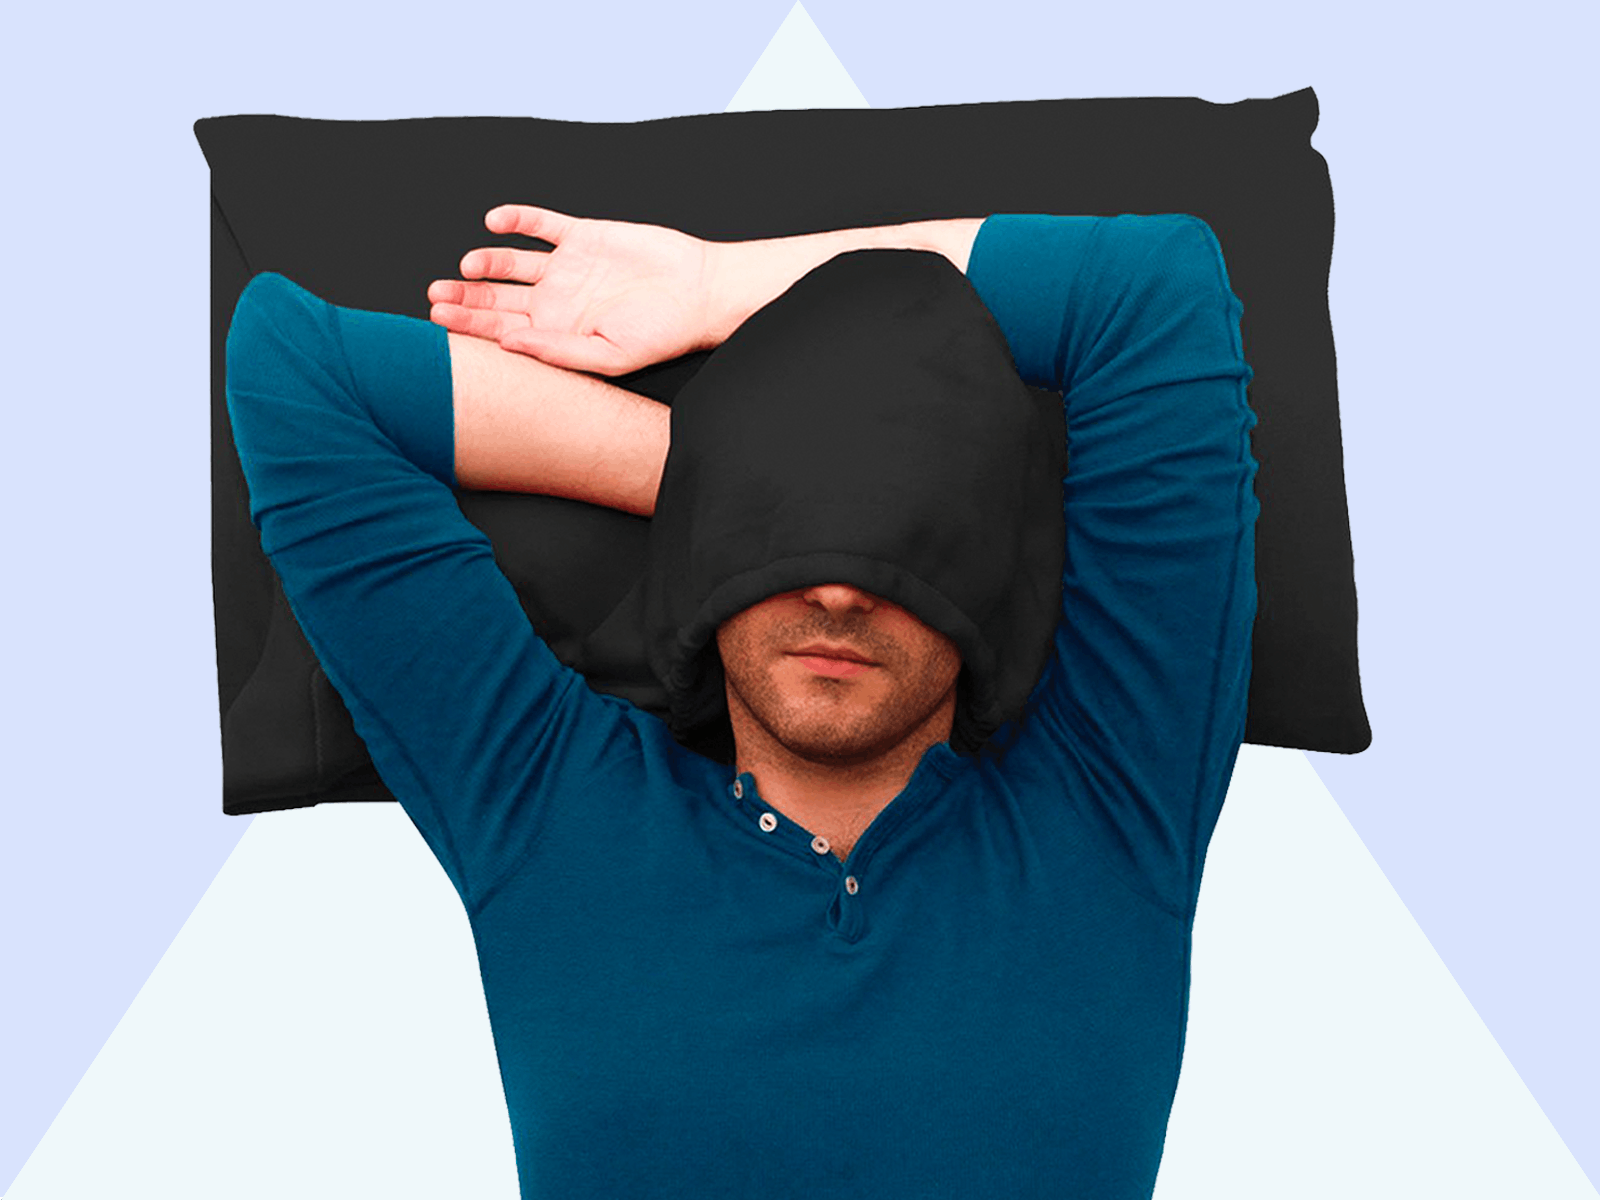 46 Great Gifts For Men On Amazon